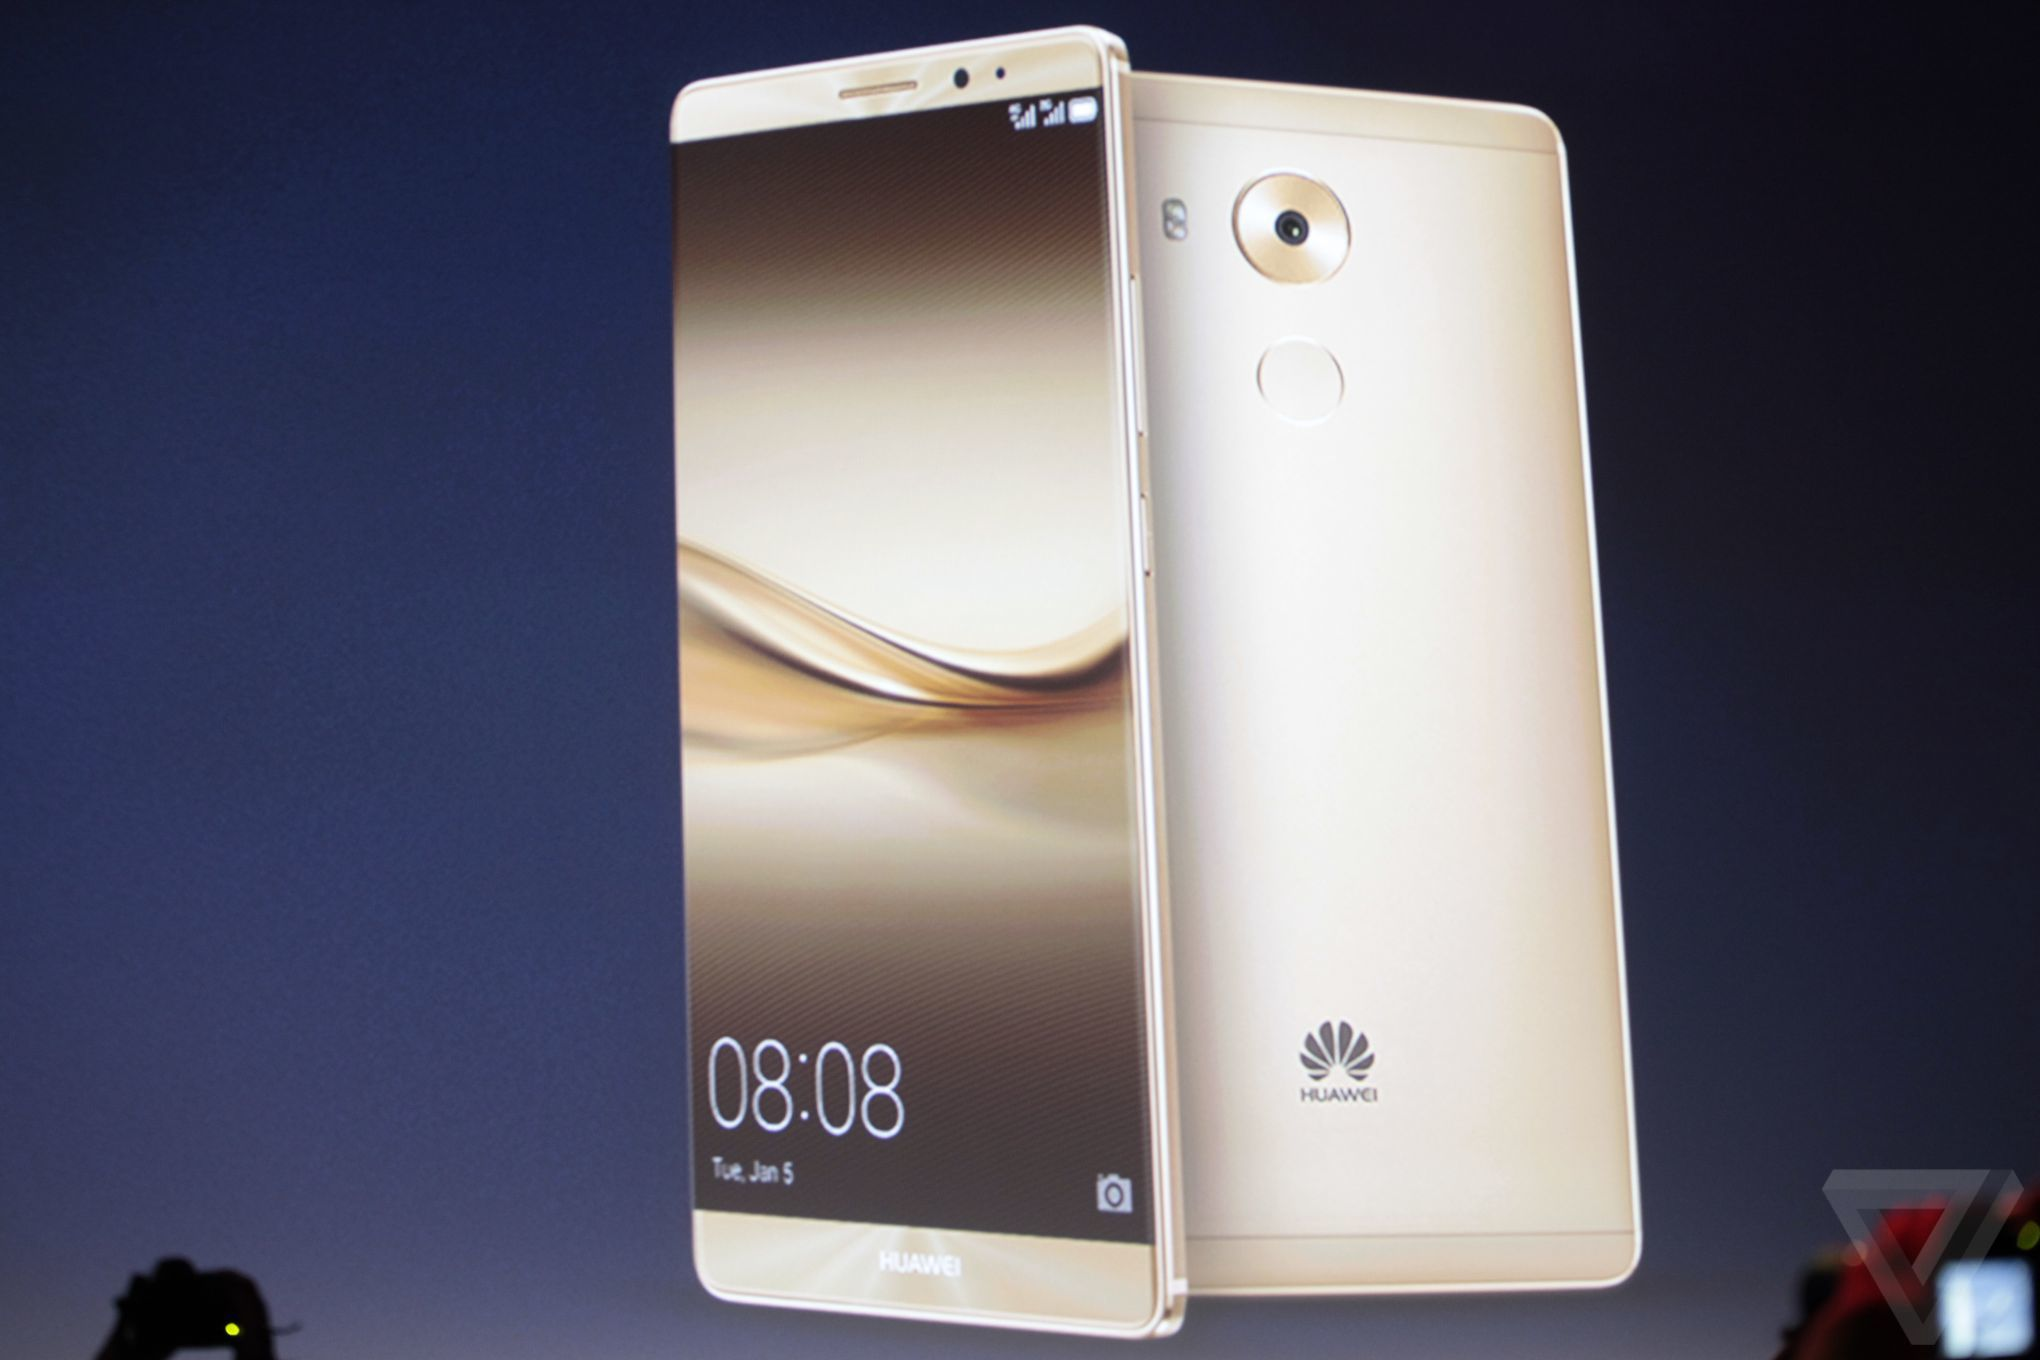 Huawei's Mate 8 flagship smartphone has fast charging ...